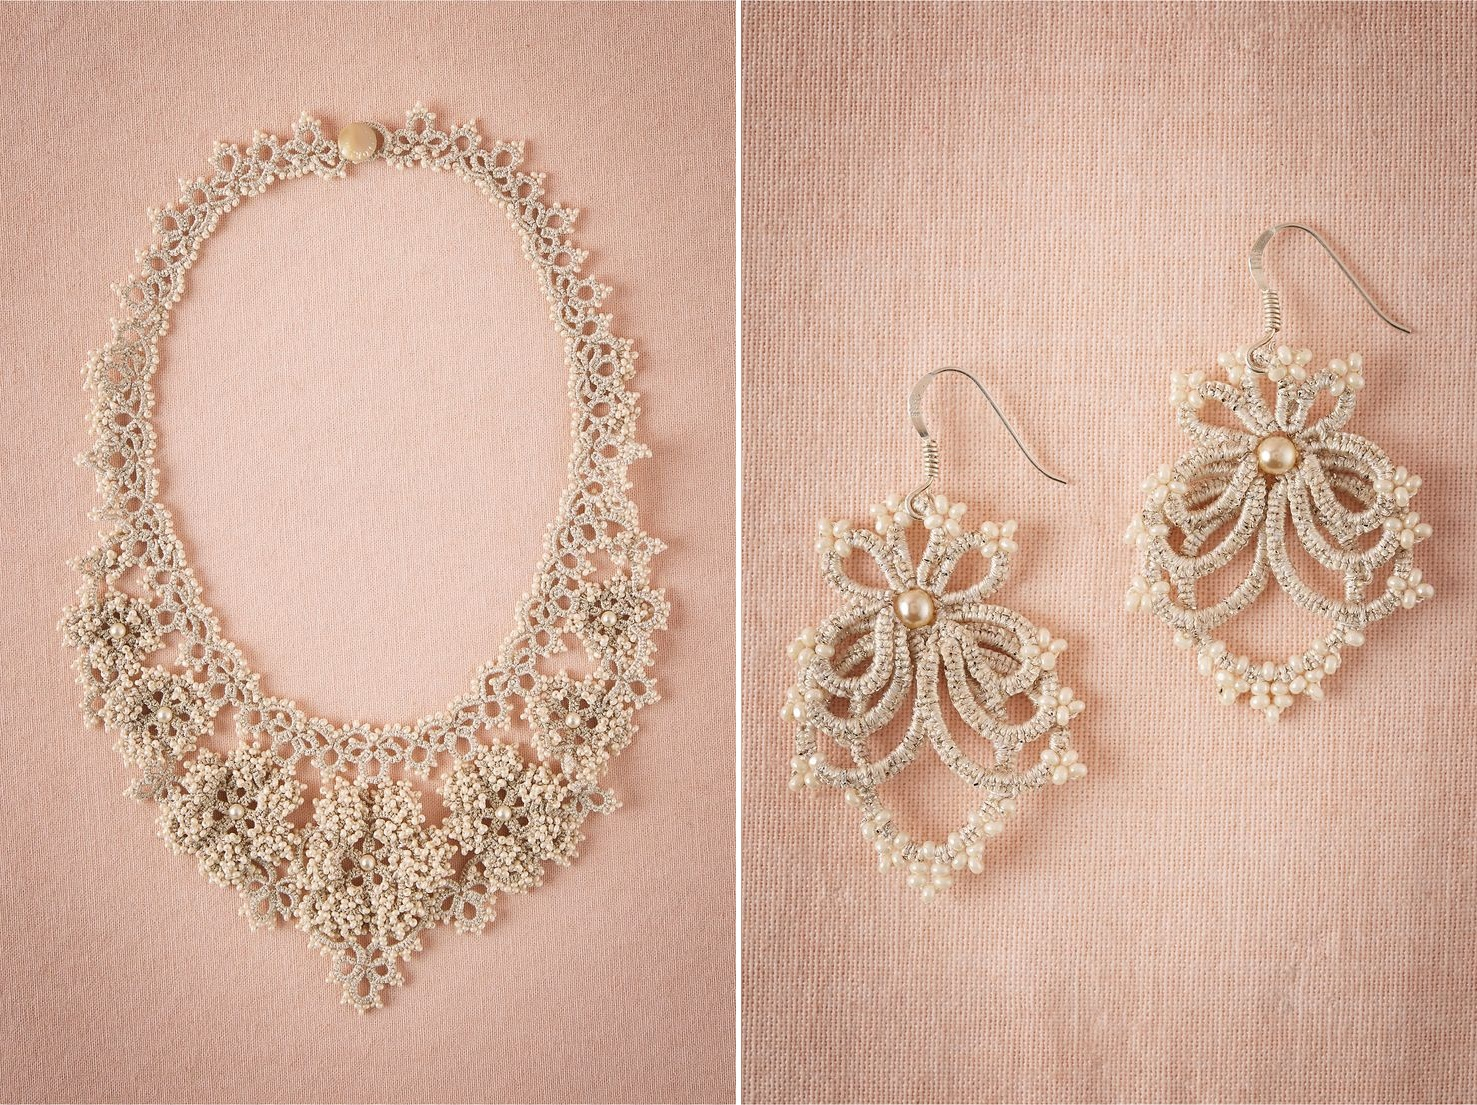 Camellia Necklace & Iona Earrings